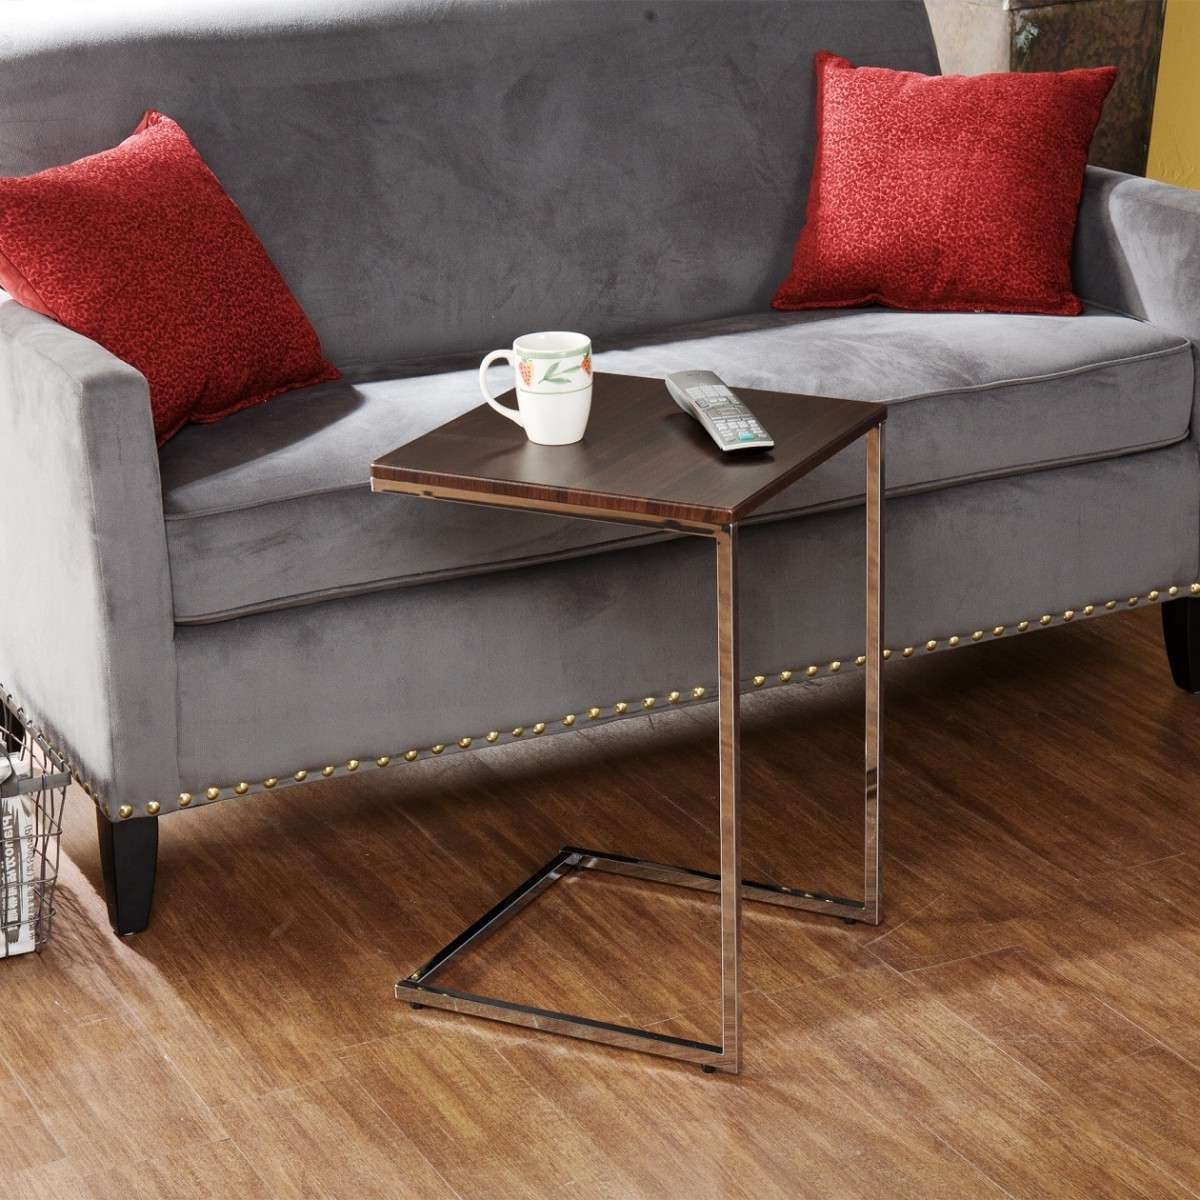 2017 C Coffee Tables For Modern C Coffee Table Tv Tray With Metal Stand And Wooden Top Ideas (View 1 of 20)